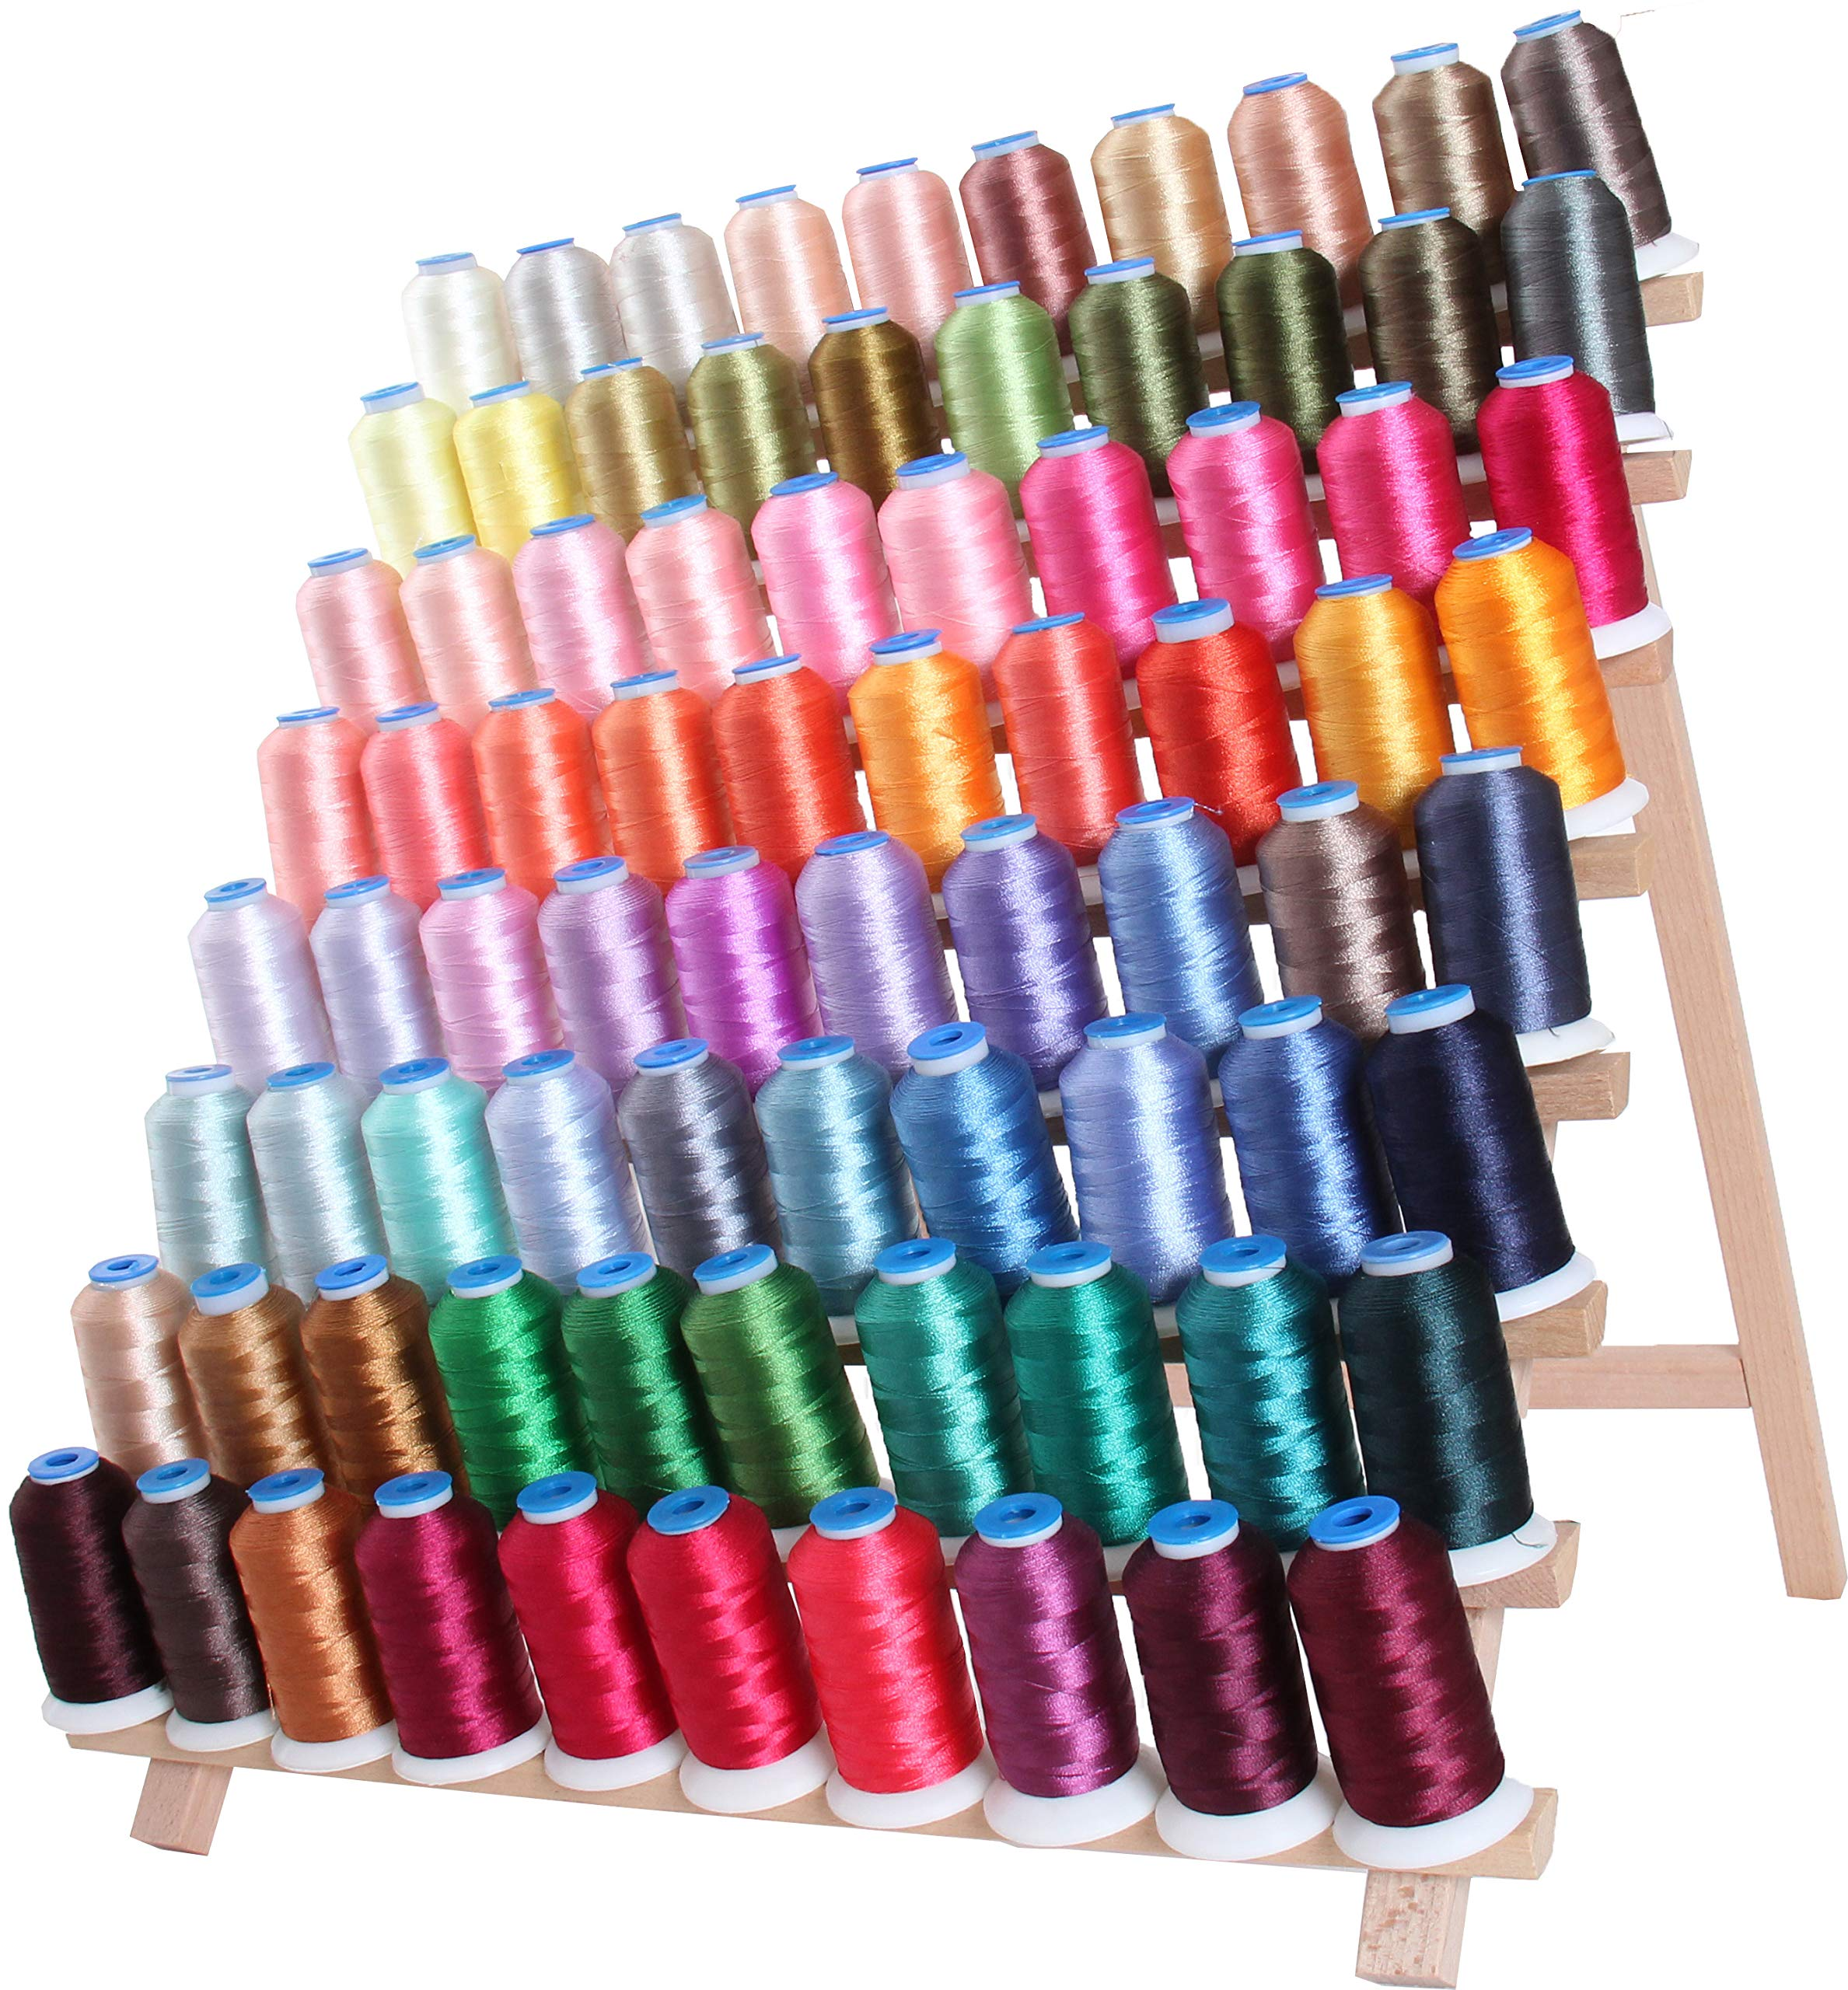 Threadart 80 Spool Polyester Embroidery Machine Thread Sets C&D | 1000M Spools 40wt | For Brother Babylock Janome Singer Pfaff Husqvarna Bernina Machines - 2 Sets Available by Threadart